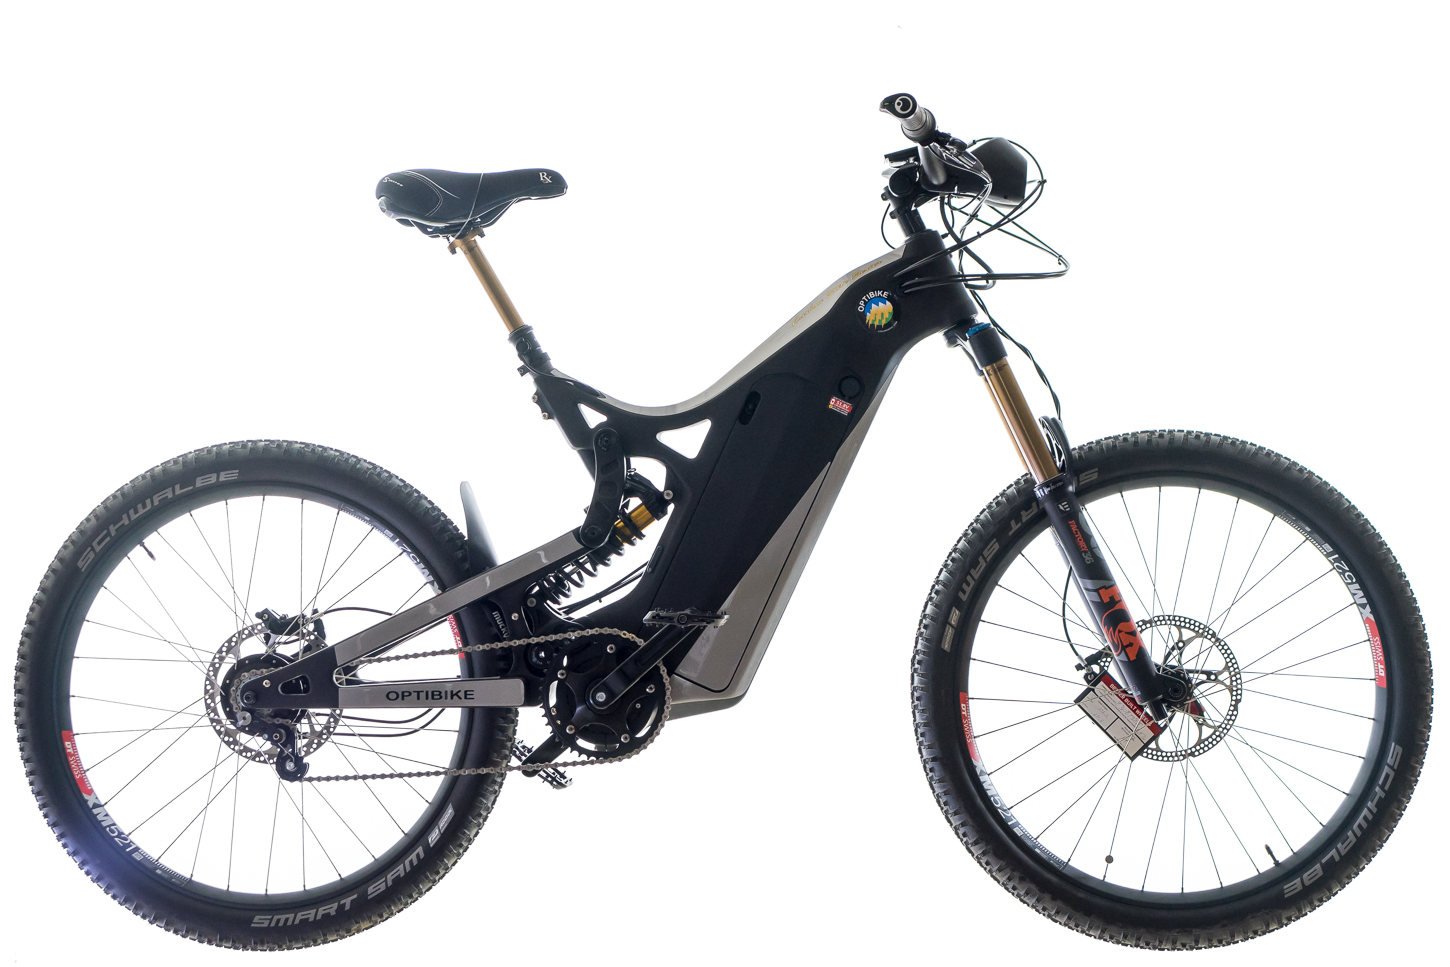 Optibike R15C Electric Mountain Bike, Black and Silver Color